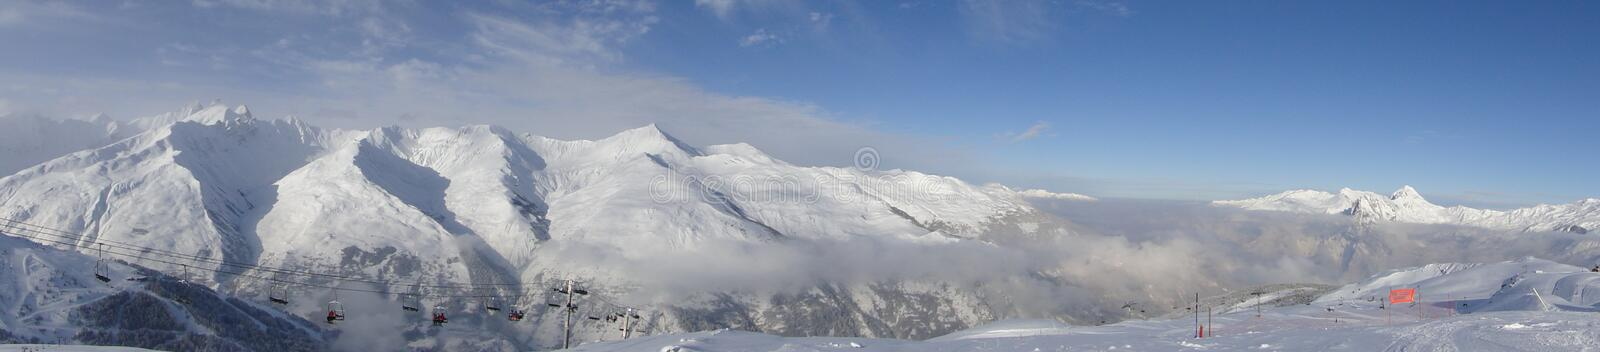 Wintry Alpine landscape stock images